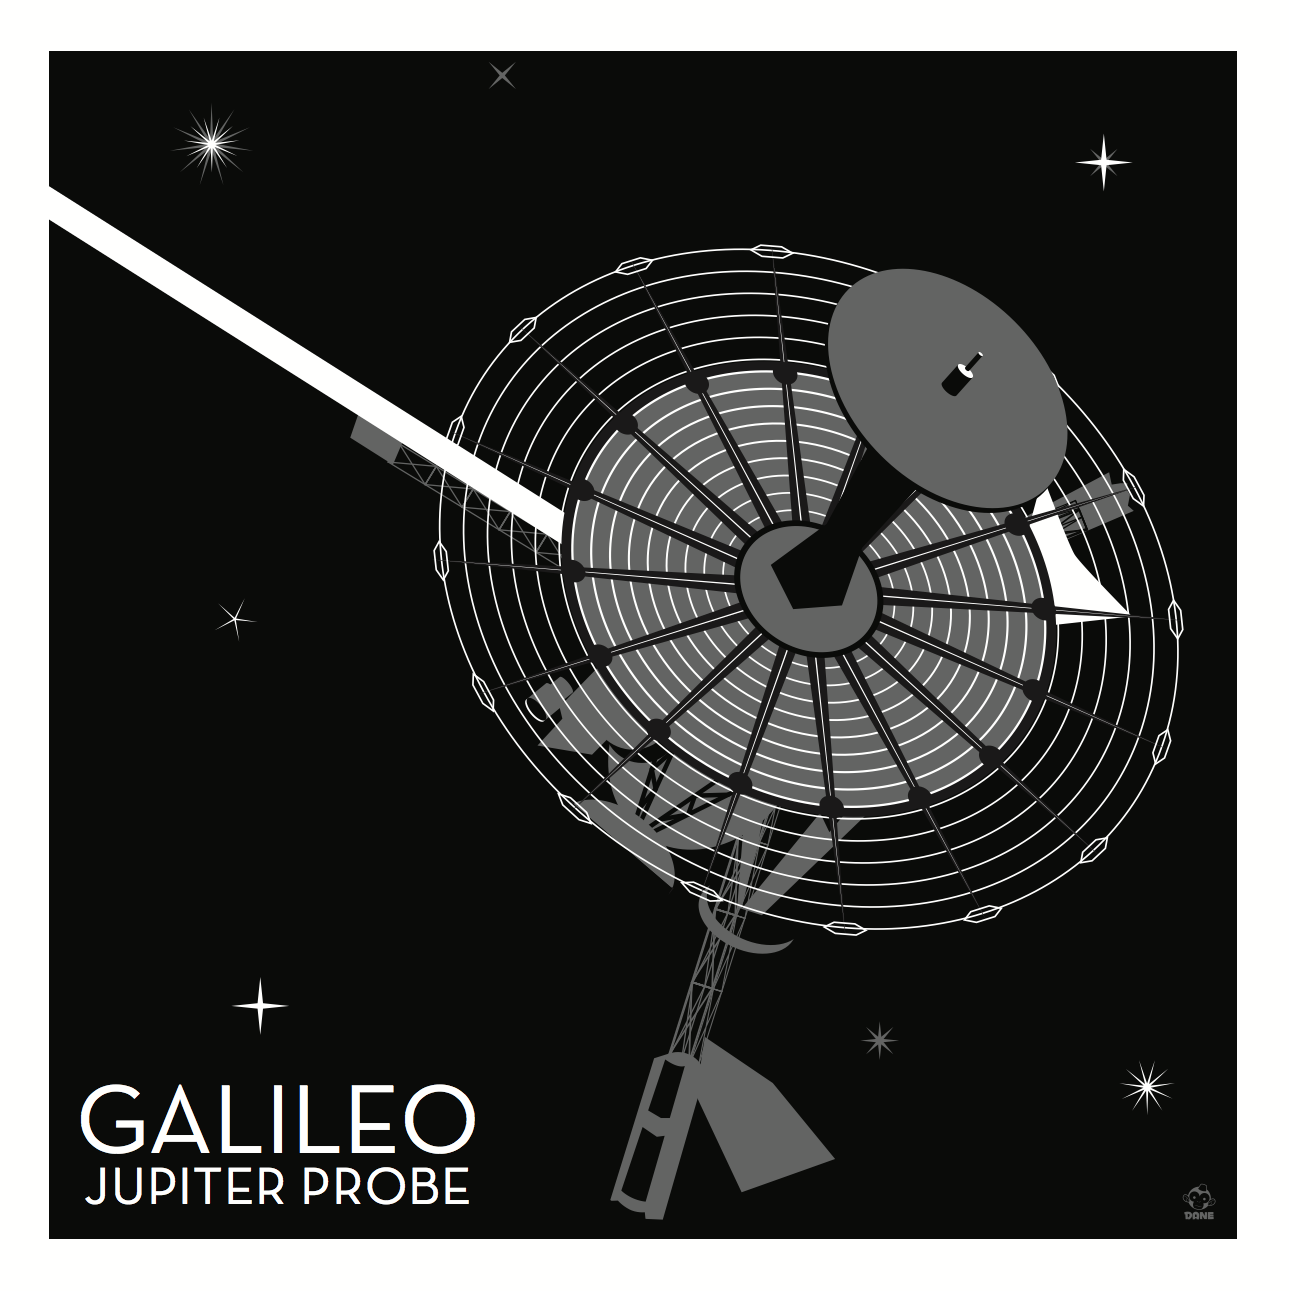 Galileo Jupiter Nasa Probe - 10x10 Giclee Print